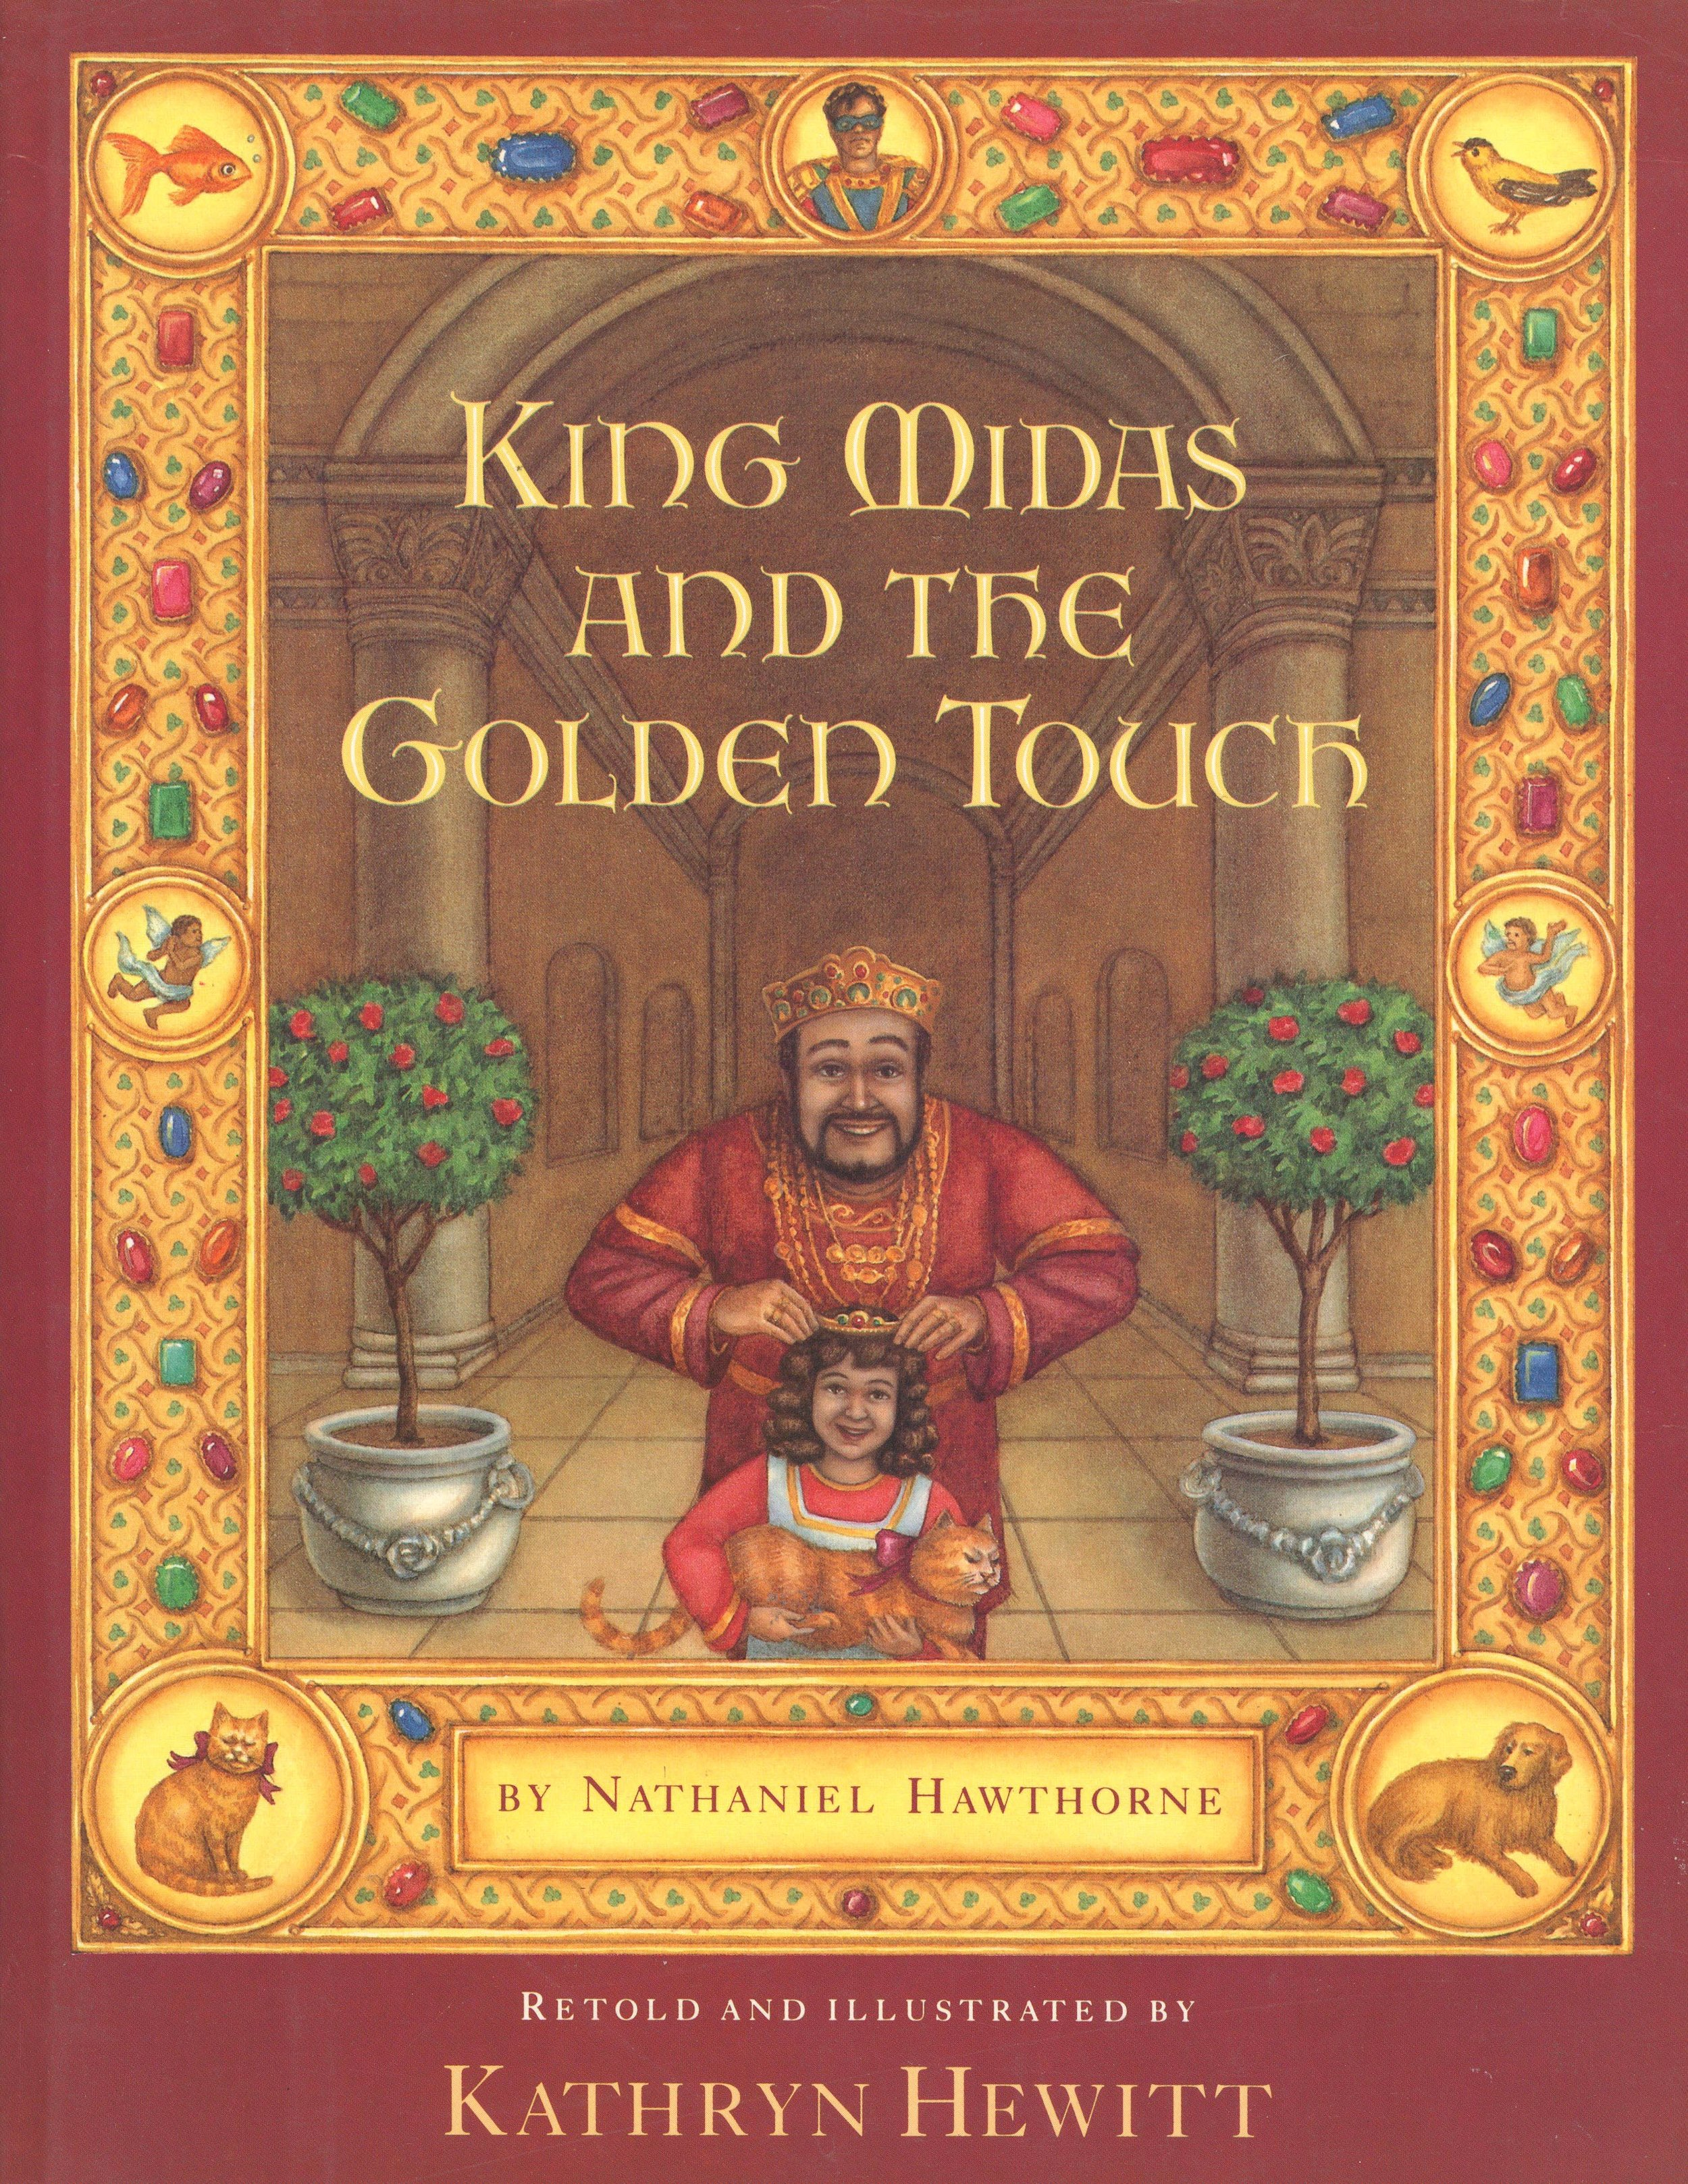 """King Midas and the Golden Touch - Retold and illustrated by Kathryn HewittHarcourt 1987An amusing rendition of the Hawthorne tale about King Midas and his daughter Marigold. """"Hewitt's artwork shines with a golden touch of its own."""" --Booklist"""